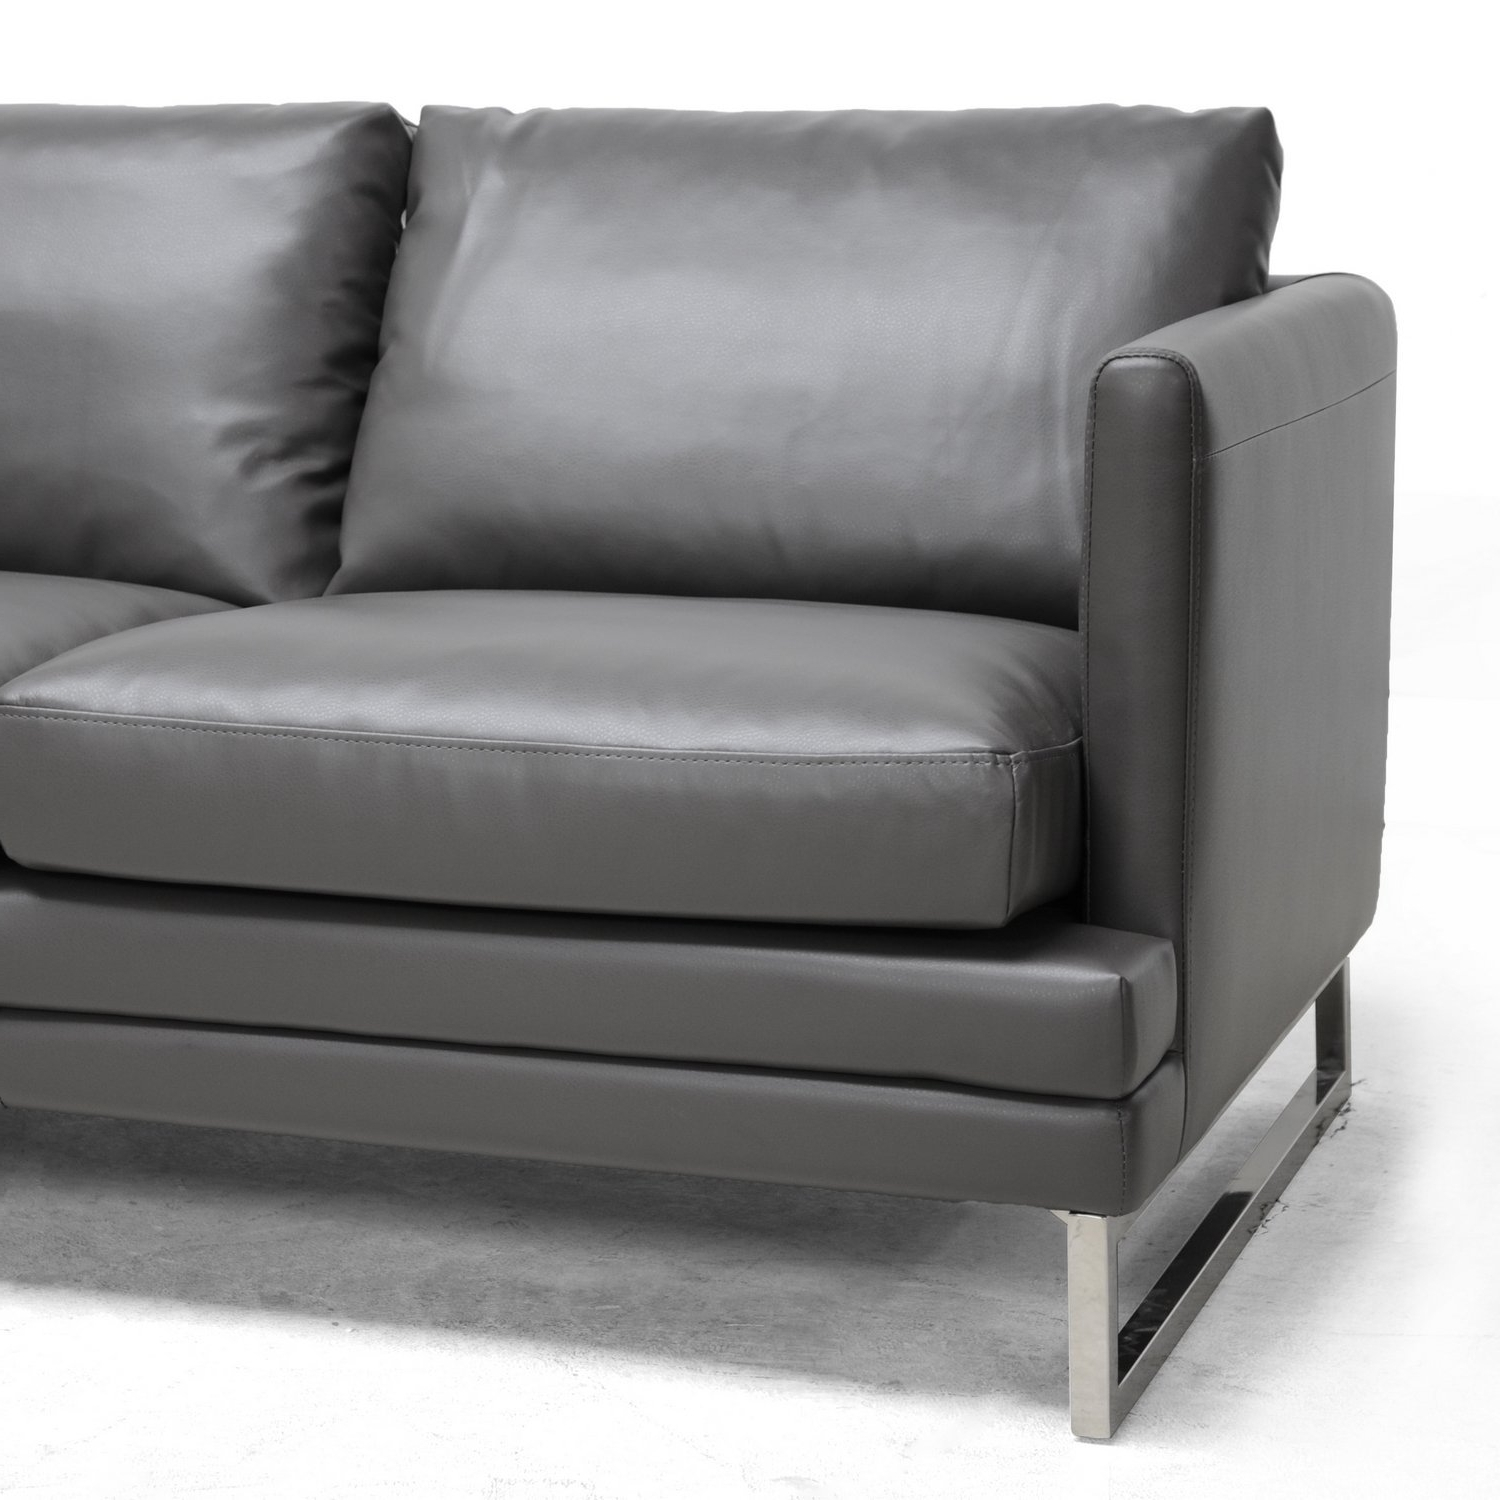 Contemporary Leather Sofas Italian Sofa Uk Modern Furniture High Intended For Preferred High Point Nc Sectional Sofas (View 1 of 20)